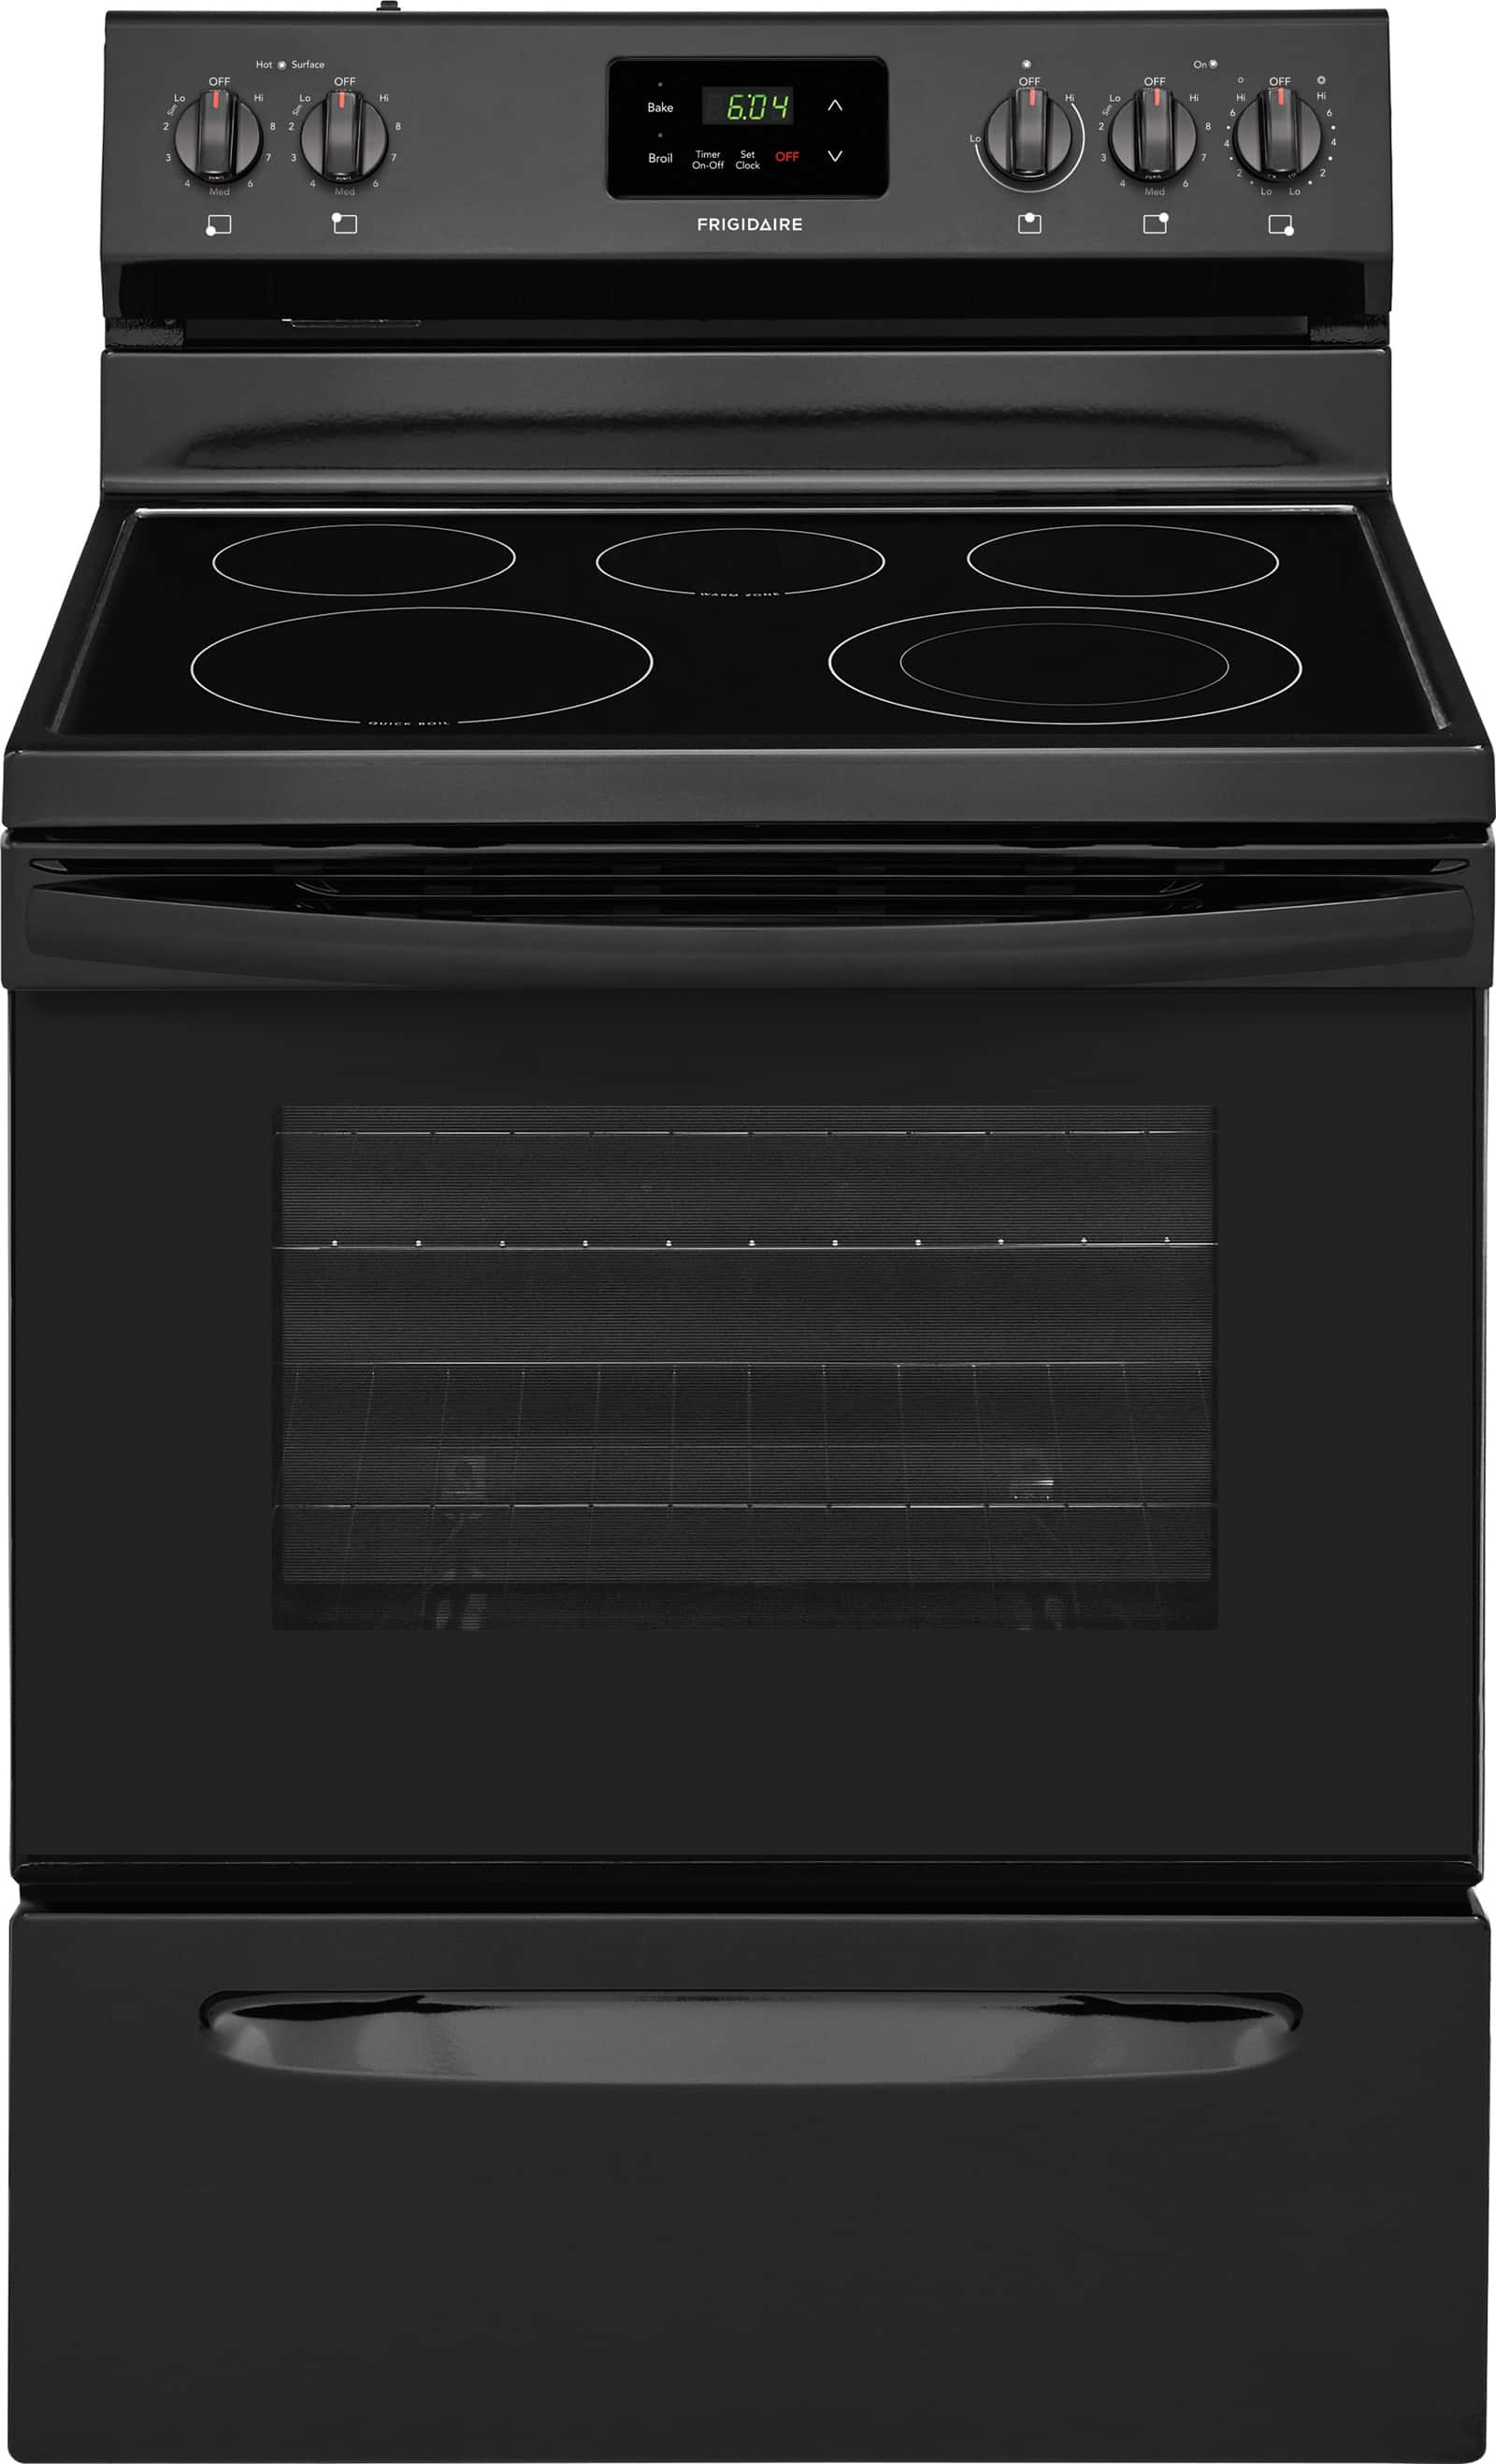 Lowe's: Frigidaire Smooth Surface 5-Element 4.9-cu ft Freestanding Electric Range $499 + Free Shipping